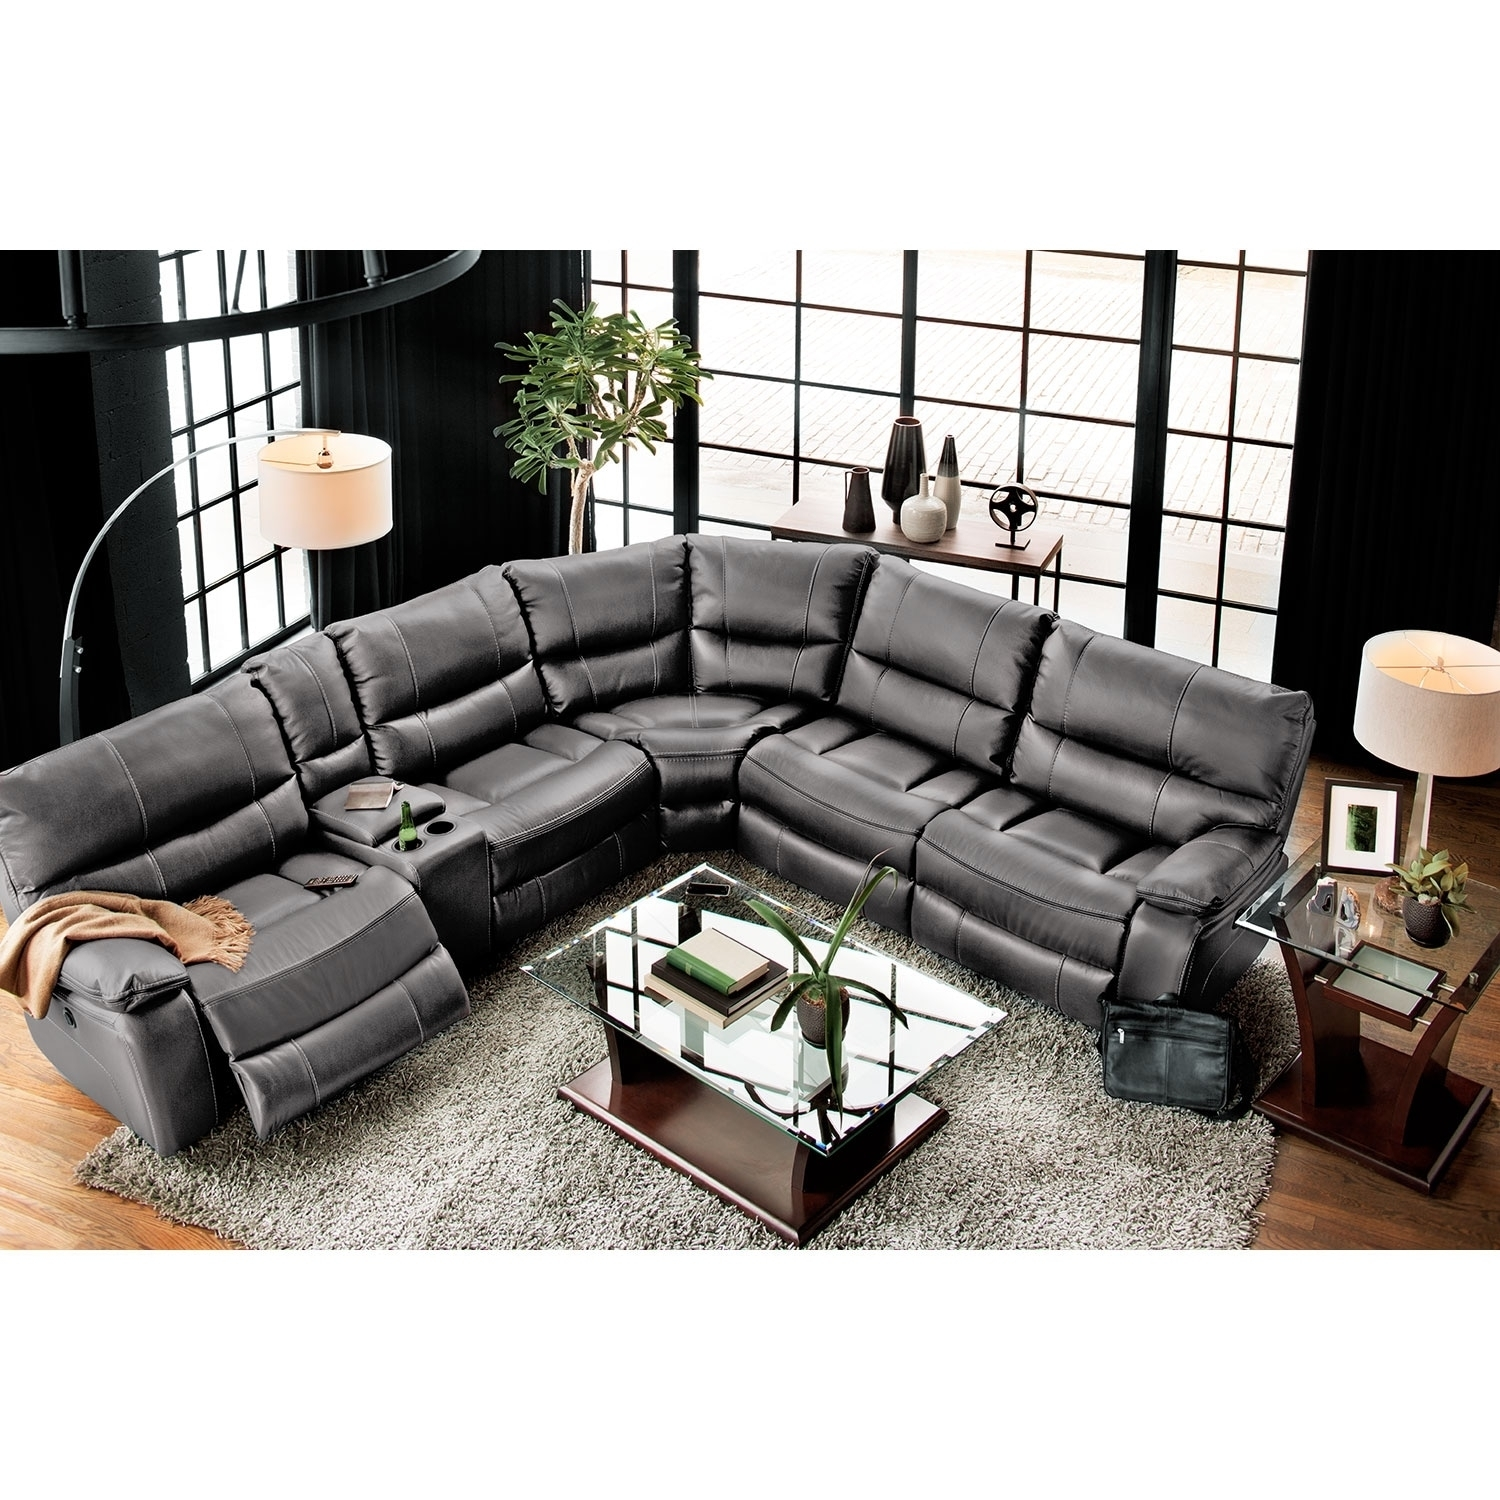 Orlando 6 Piece Power Reclining Sectional With 1 Stationary Chair Inside Orlando Sectional Sofas (View 3 of 10)